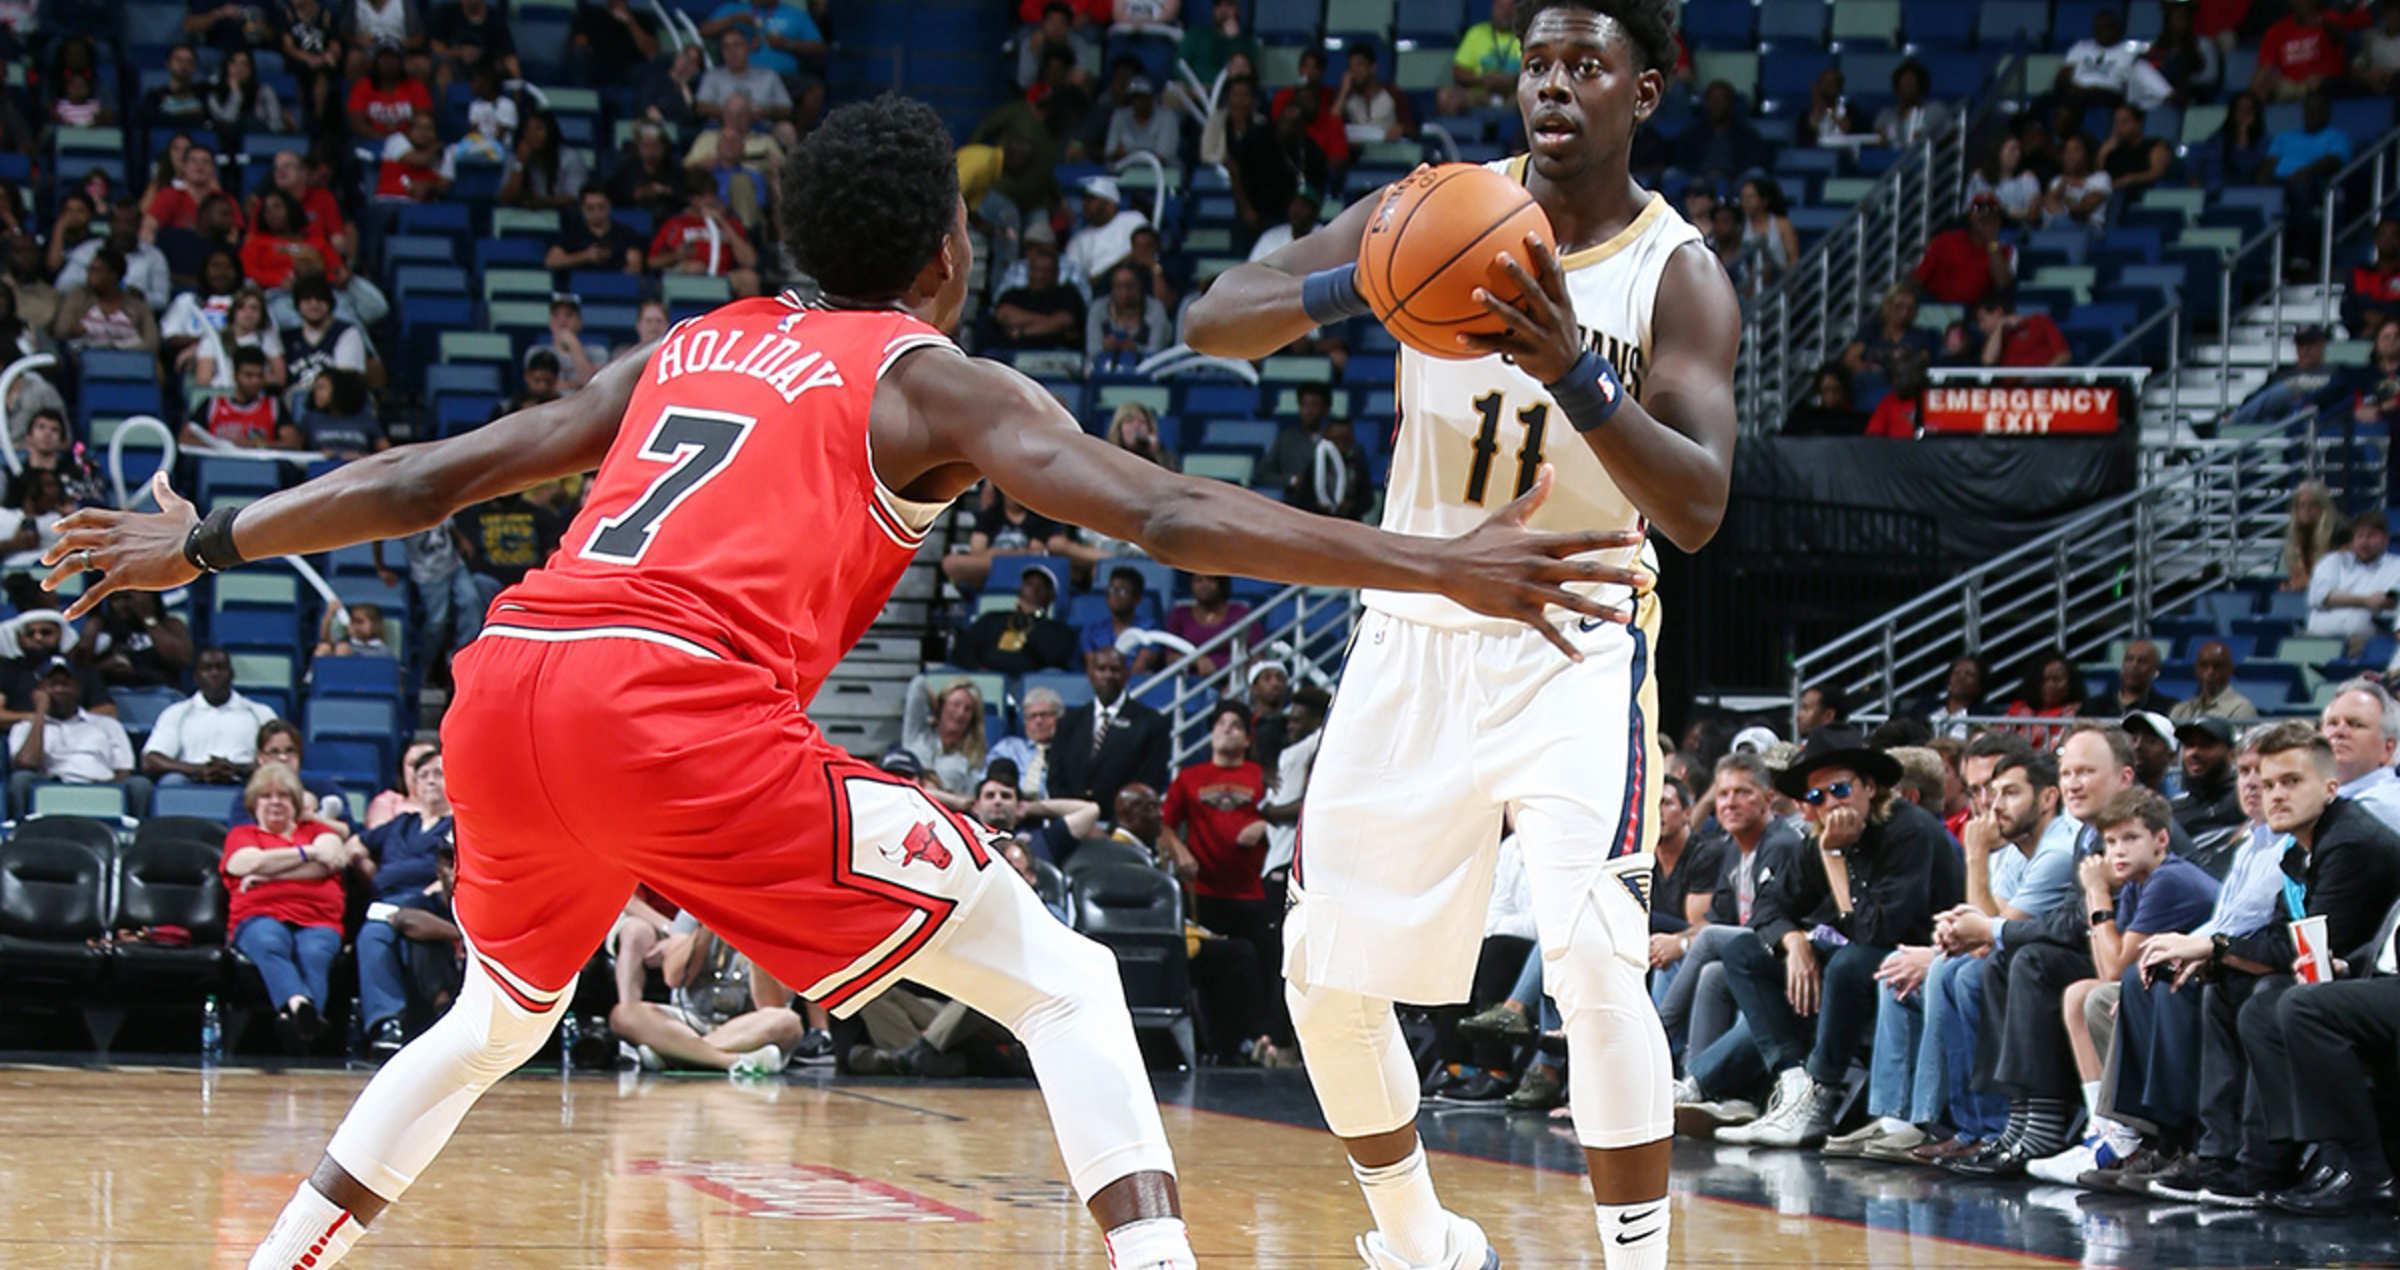 Jrue Holiday #11 of the New Orleans Pelicans handles the ball during a preseason game against the Chicago Bulls on October 3, 2017 at the Smoothie King Center in New Orleans, Louisiana.